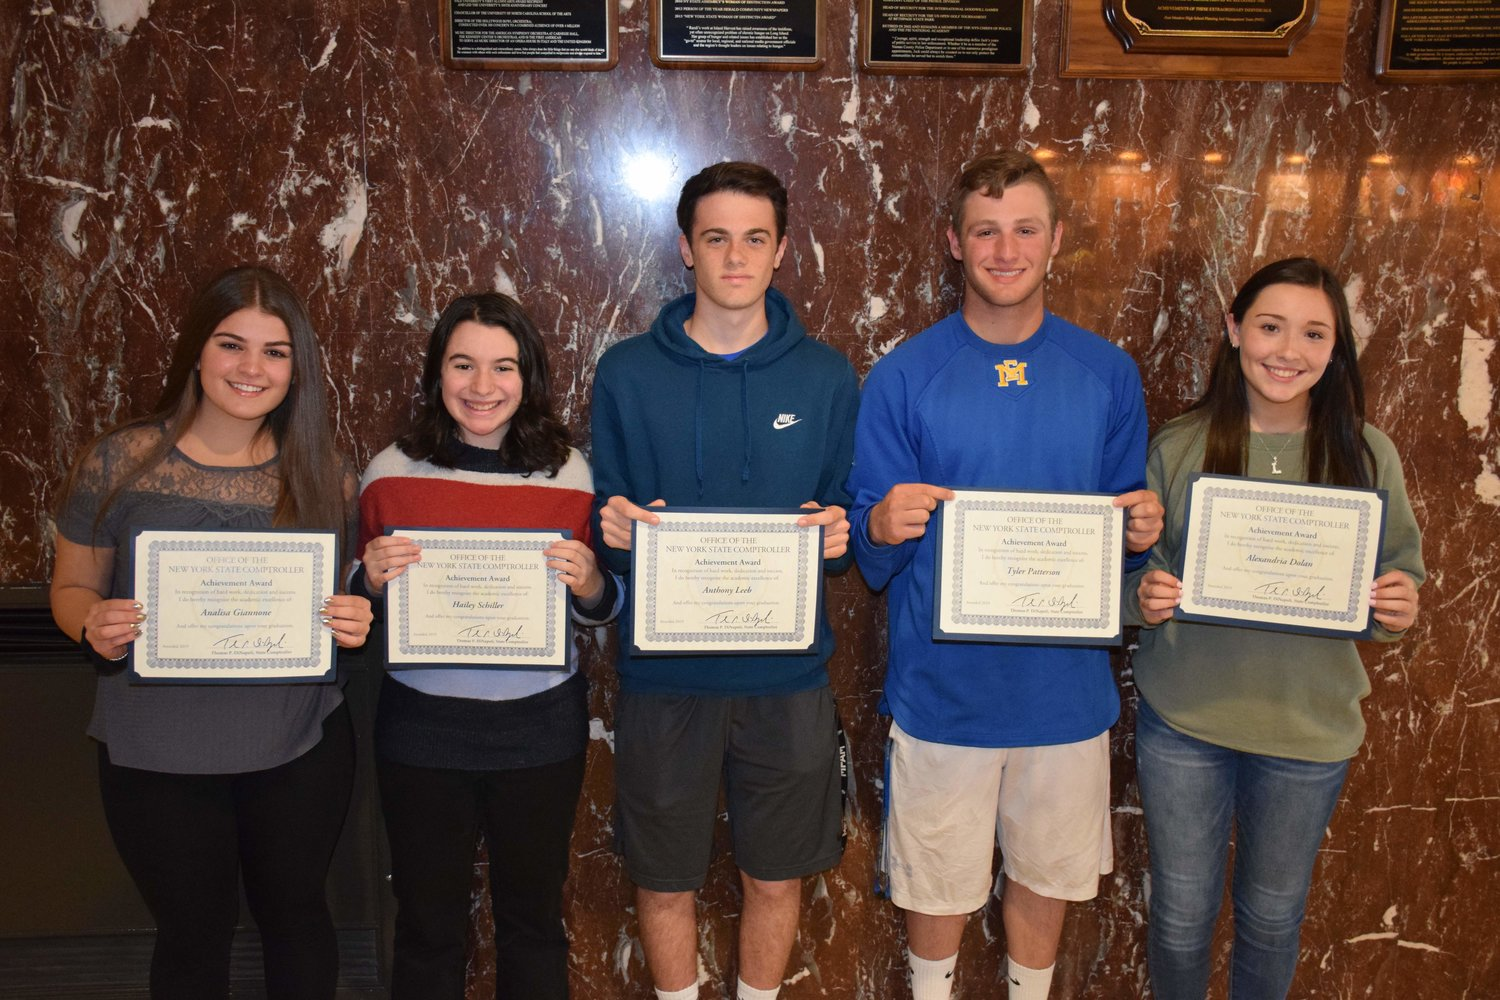 East Meadow High School seniors Analisa Giannone, left, Hailey Schiller, Anthony Leeb, Tyler Patterson and Alexandria Dolan were honored with the 2019 New York State Comptroller's Student Achievement Award.